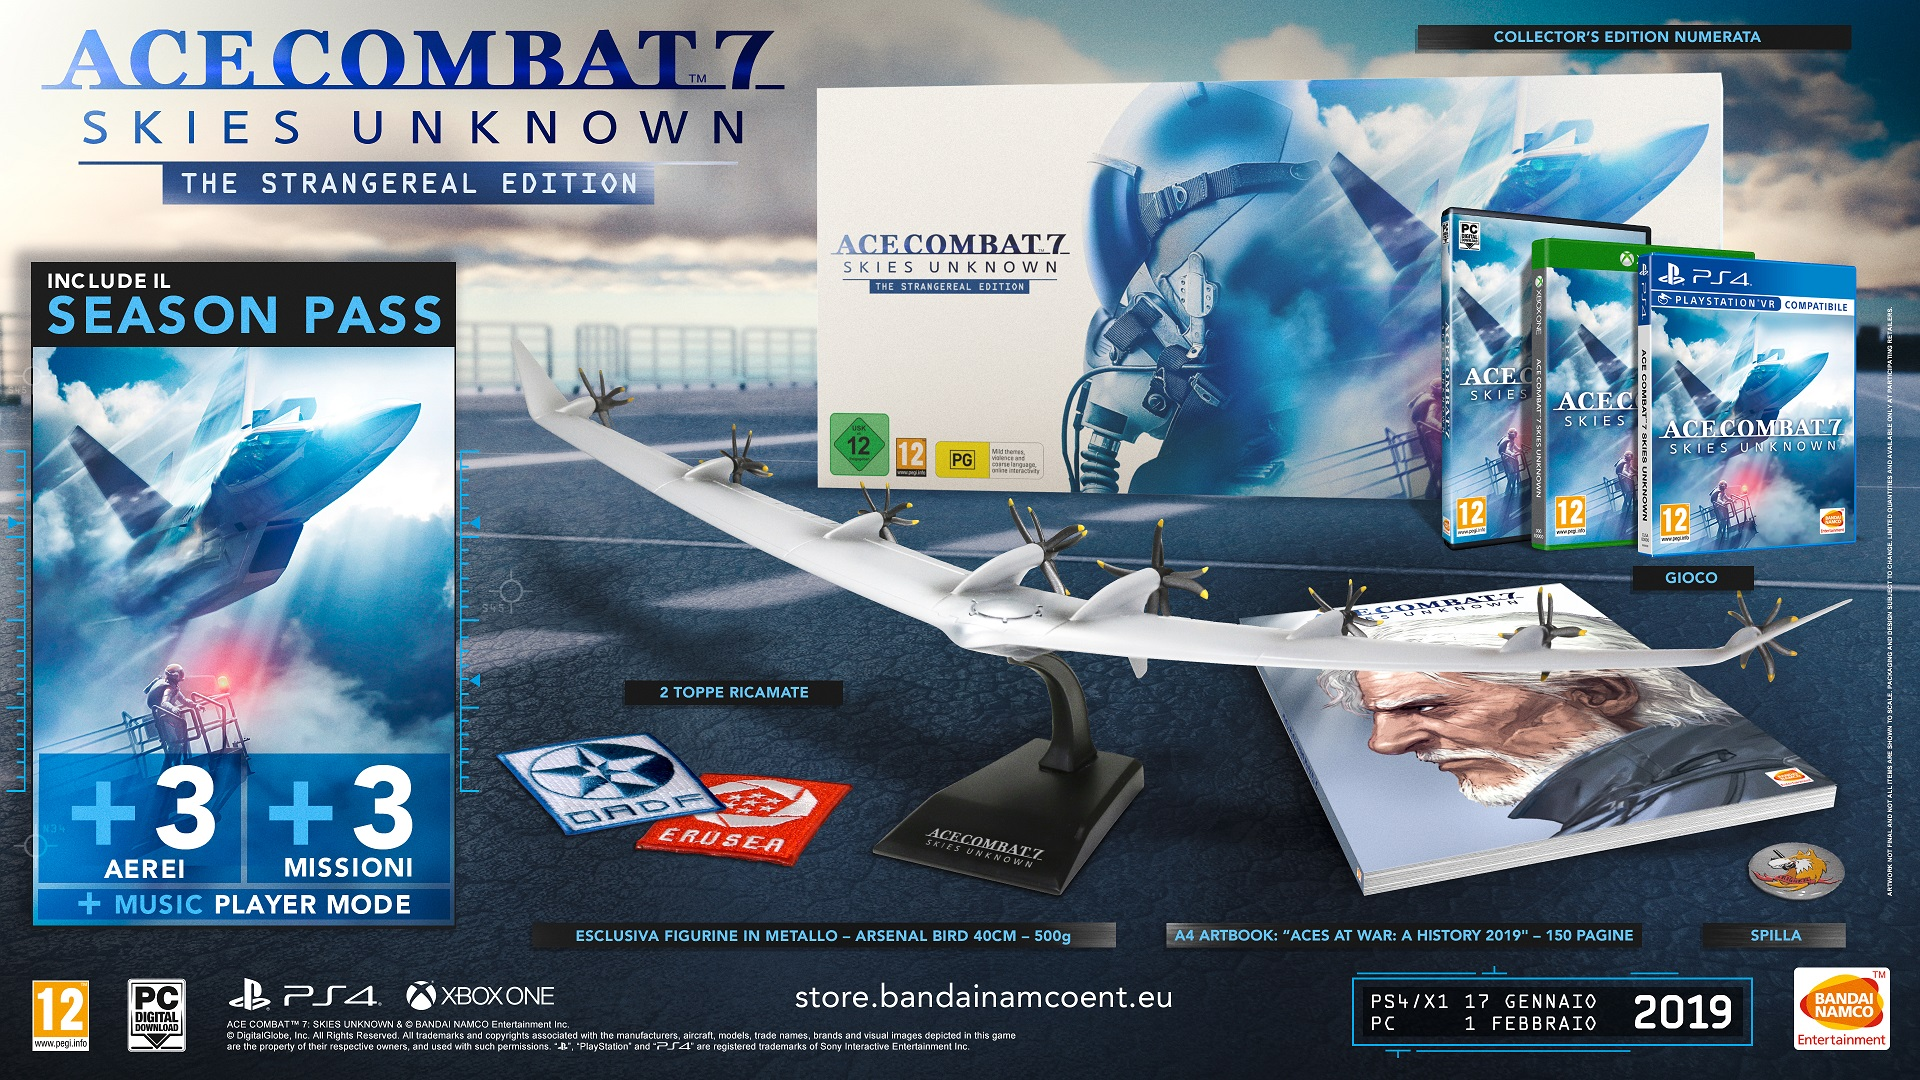 Ace Combat 7 Collector's Edition